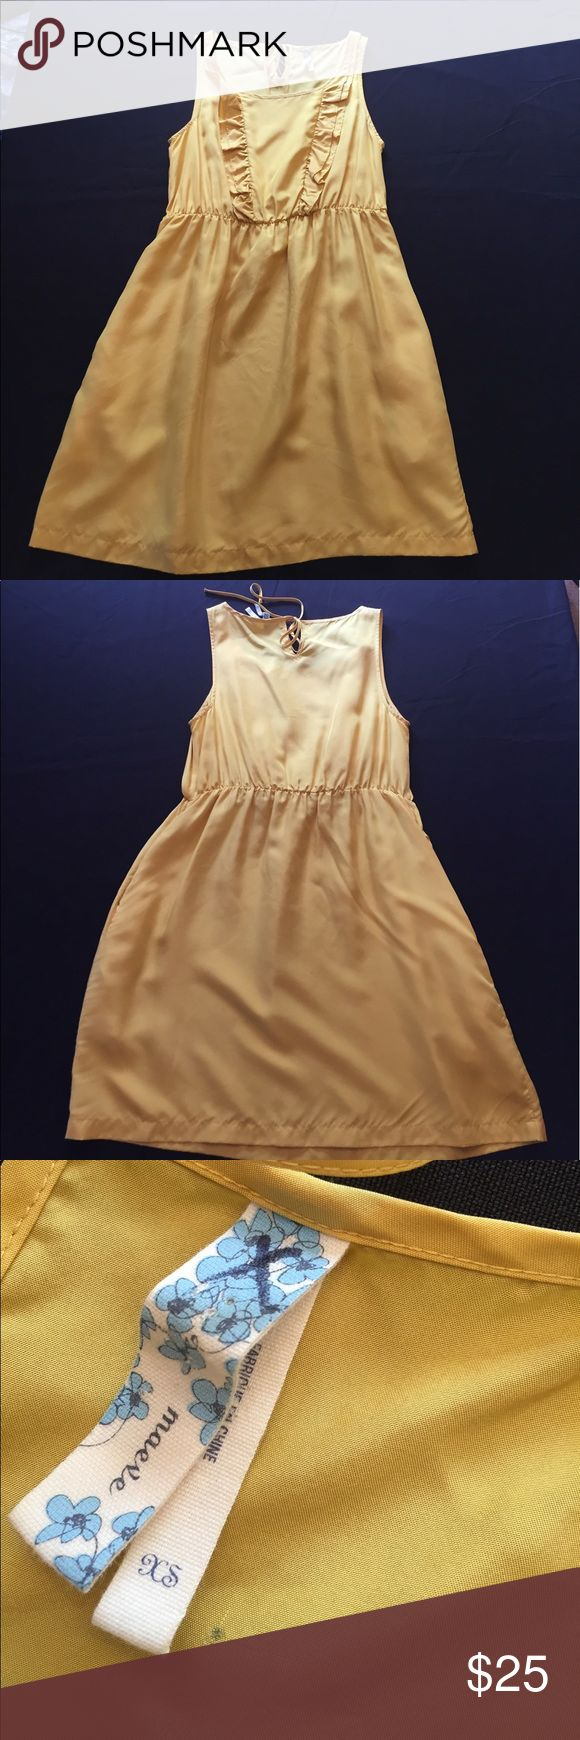 "maeve xs yellow dress maeve (anthropologie brand) xs yellow dress  small mark near tag where security tag was located  chest: 17"" waist: 16"" length: 33"" Anthropologie Dresses"